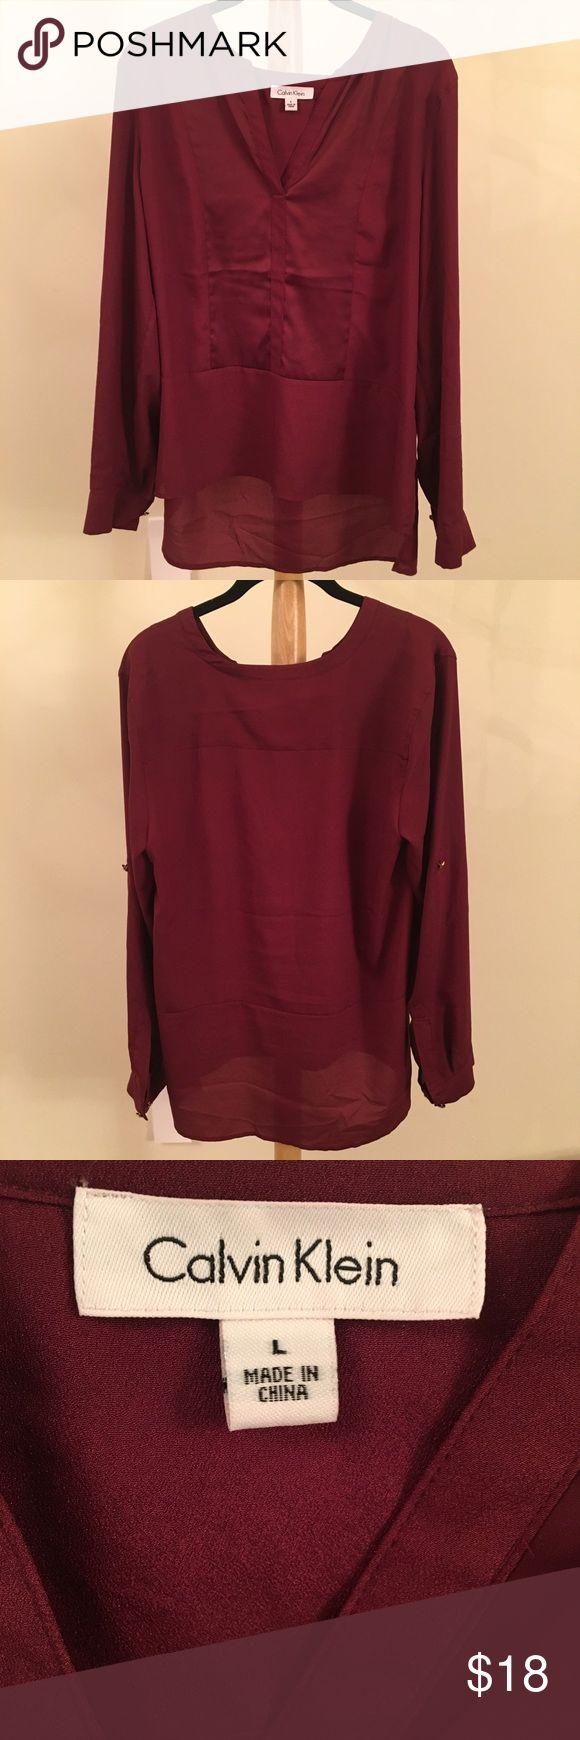 Calvin Klein Red Blouse In great condition! See pictures  Very flowy, light-weight material is perfect for spring or summer nights out.   Please feel free to comment any questions!!!!  BUNDLE 1 OR MORE ITEMS & SAVE ON SHIPPING + GET 5% OFF! Calvin Klein Tops Blouses